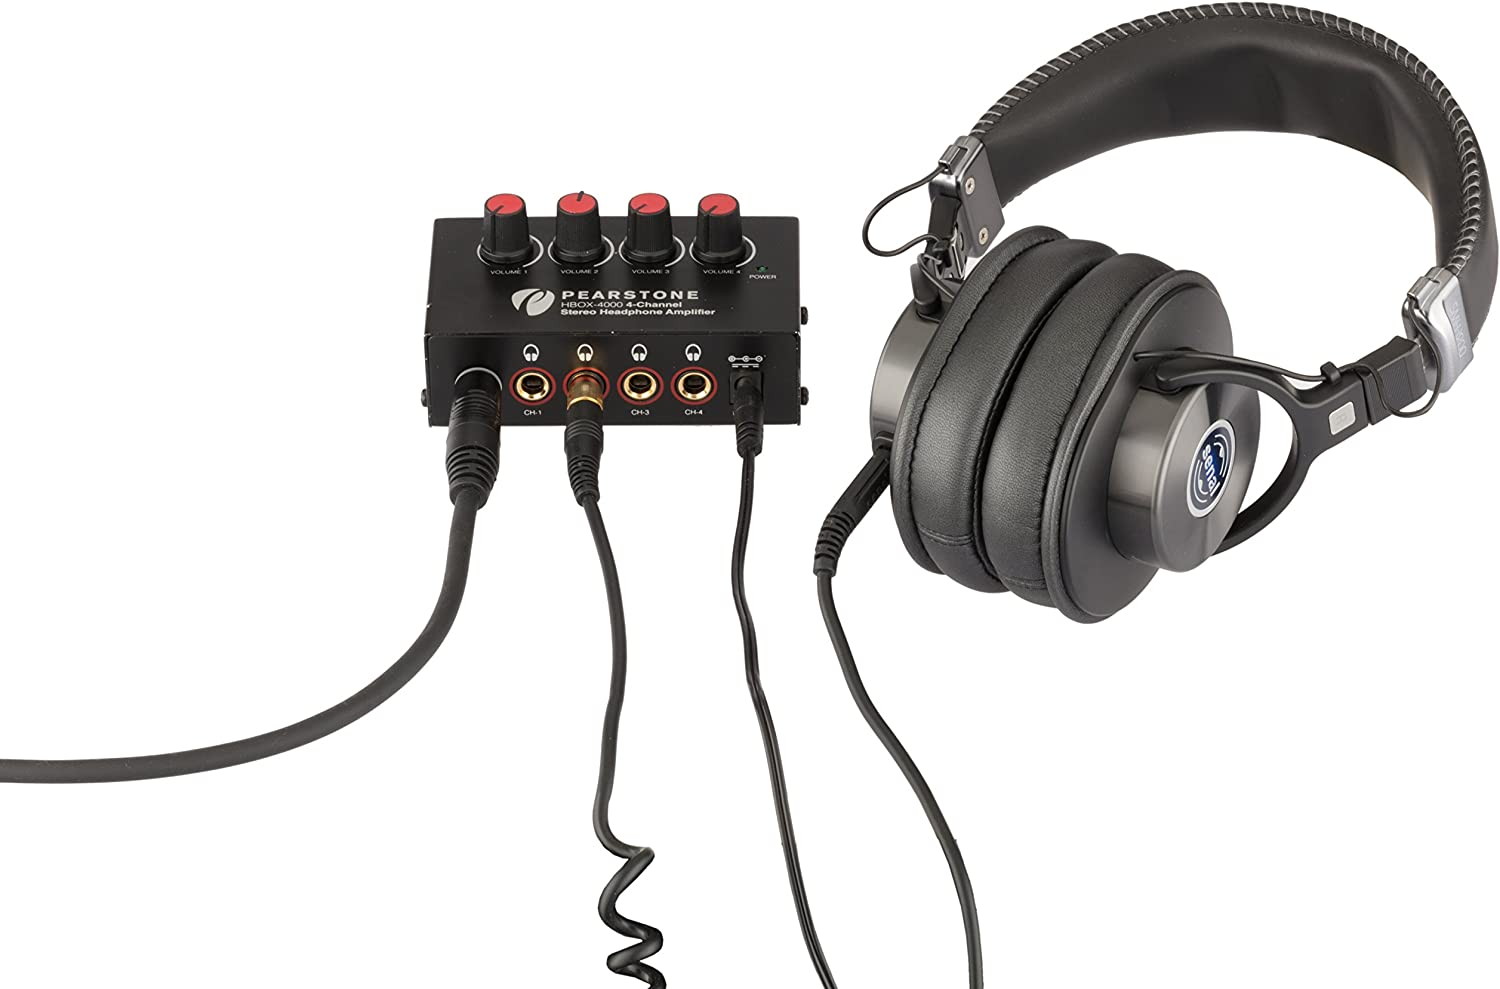 Pearstone HBOX-4000 4-Channel Stereo Headphone Amplifier Power ...